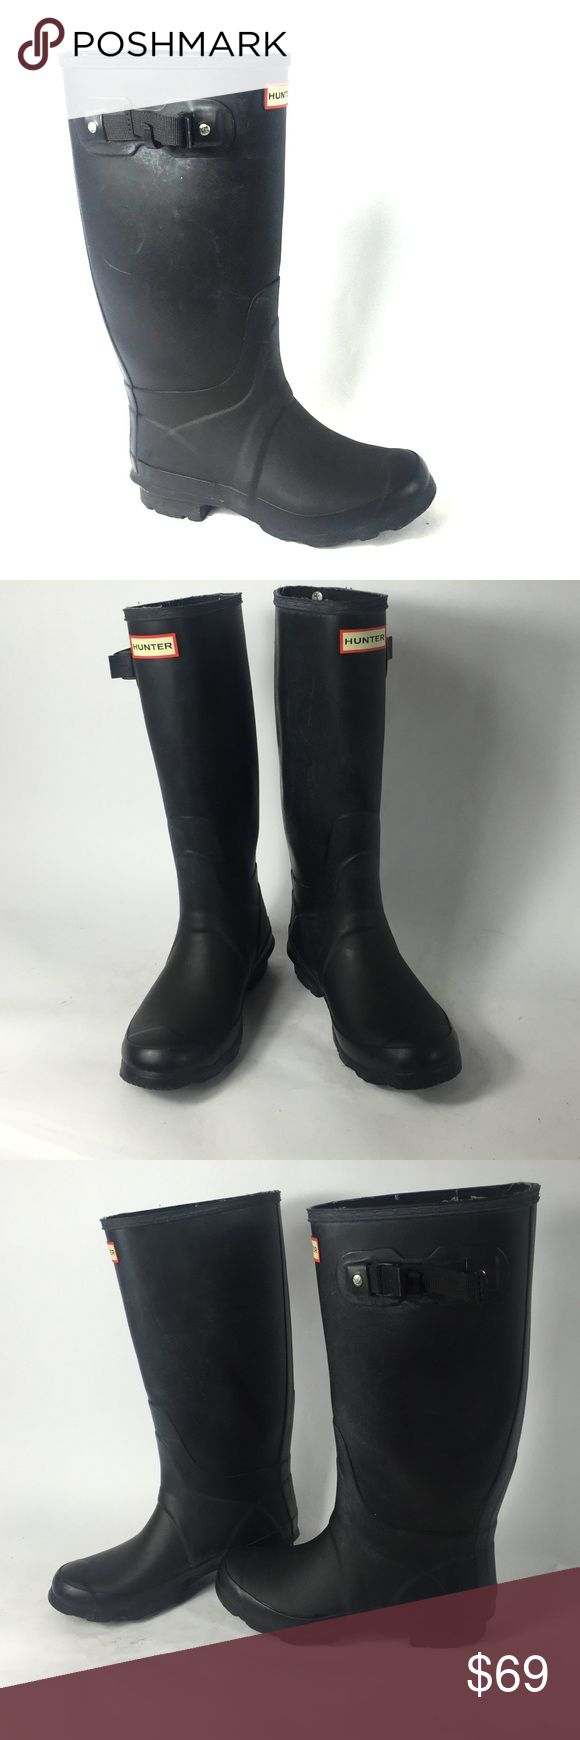 *Hunter* woman's boots 8.5/10. Very good condition. Can not really find much wrong on these. Size 37 (size 7). Minimal amount of wear, tear, and scuffs all around both shoes. I am a businessman, make me an offer I cant refuse! Please do not hesitate to ask any questions or for more pictures. Thank you for your time and have a wonderful day! Hunter Shoes Winter & Rain Boots